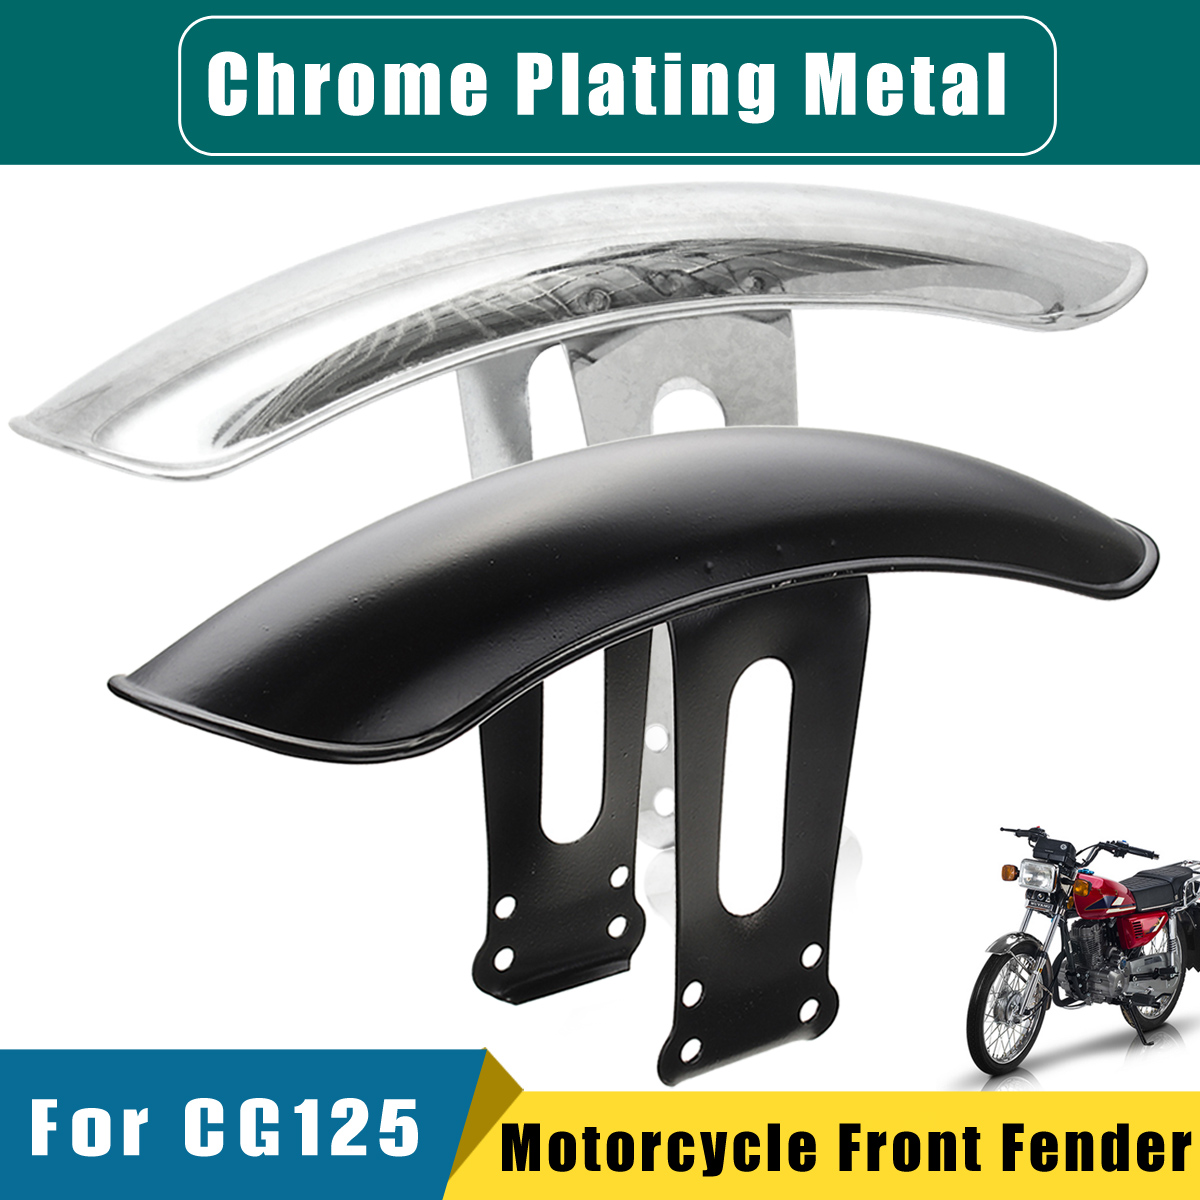 14cm Metal Plated Motorcycle Rear Mudguard Guard Front Mud Sand Guard Motorbike Wheel Cover For CG125 Black Silver metal